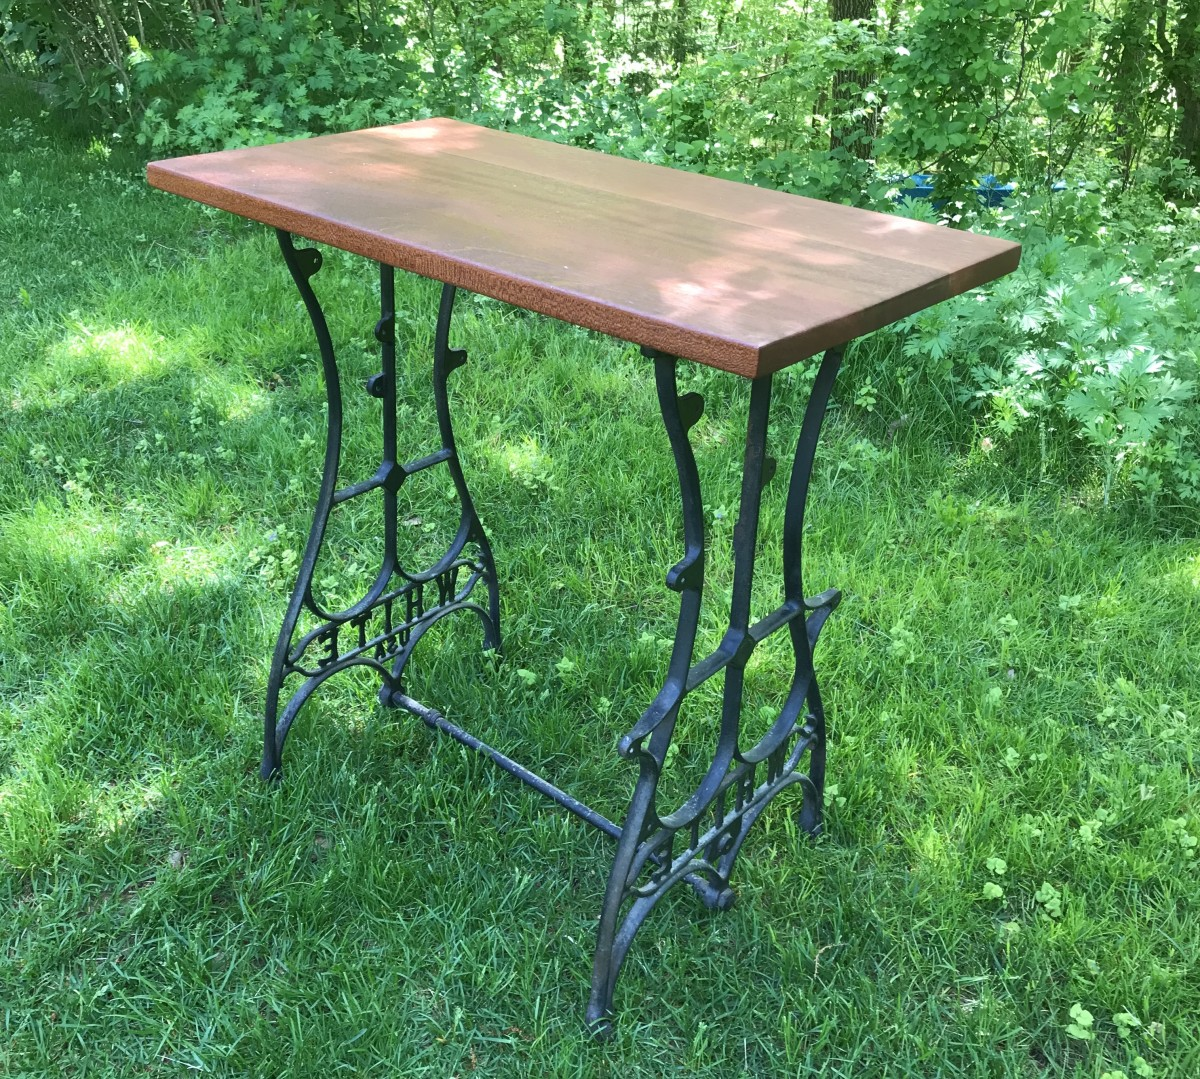 Turn a vintage sewing machine stand into an interesting and useful table.